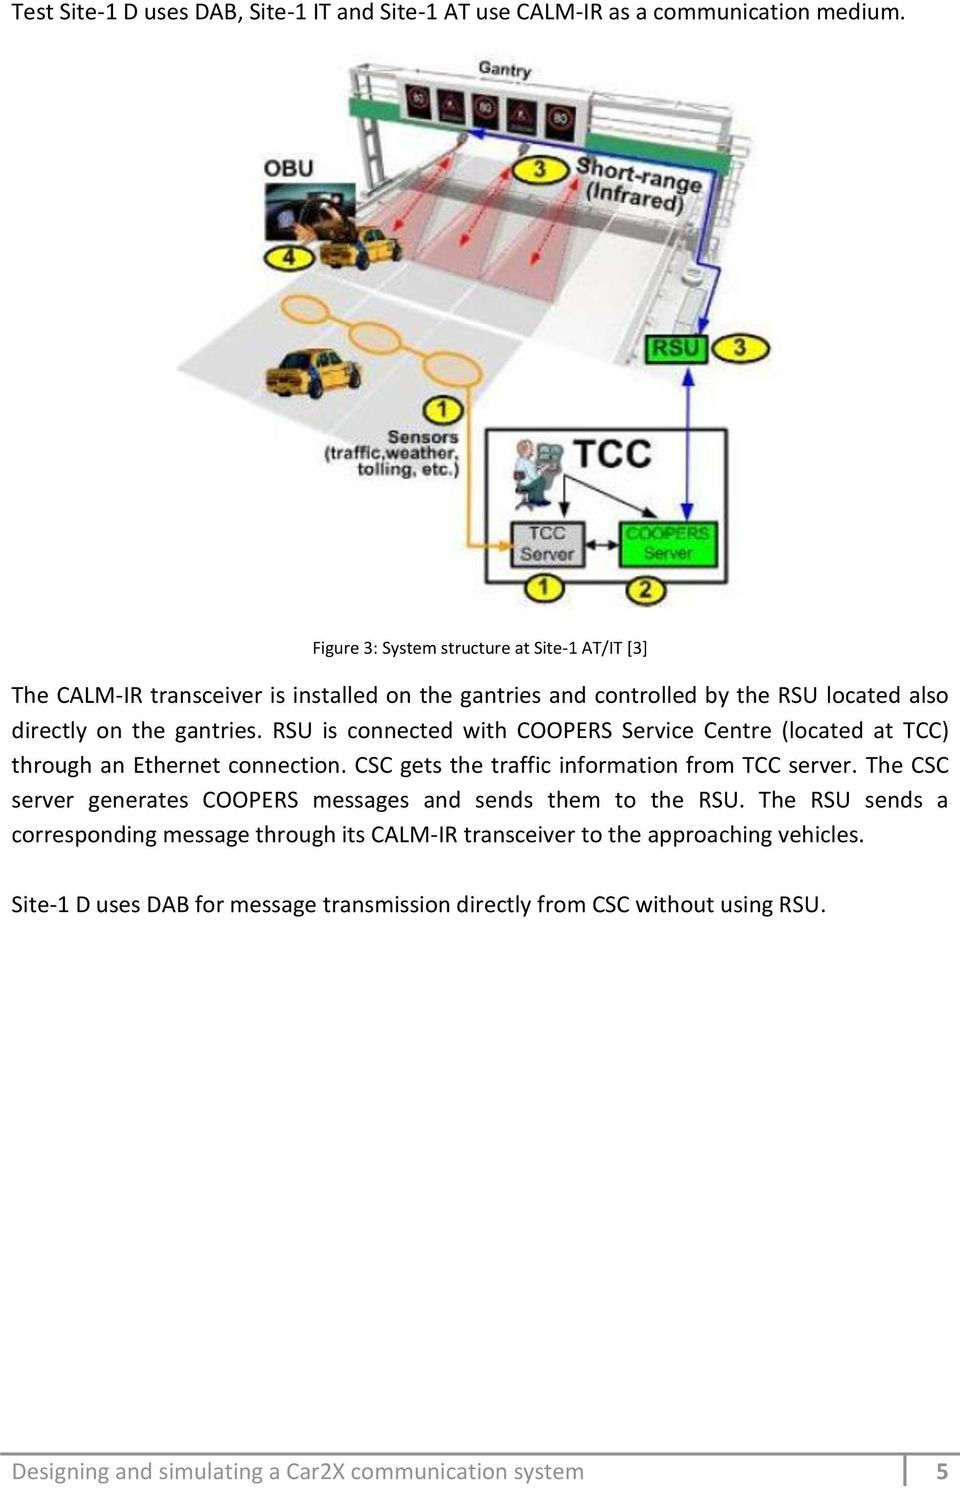 RSU is connected with COOPERS Service Centre (located at TCC) through an Ethernet connection. CSC gets the traffic information from TCC server.